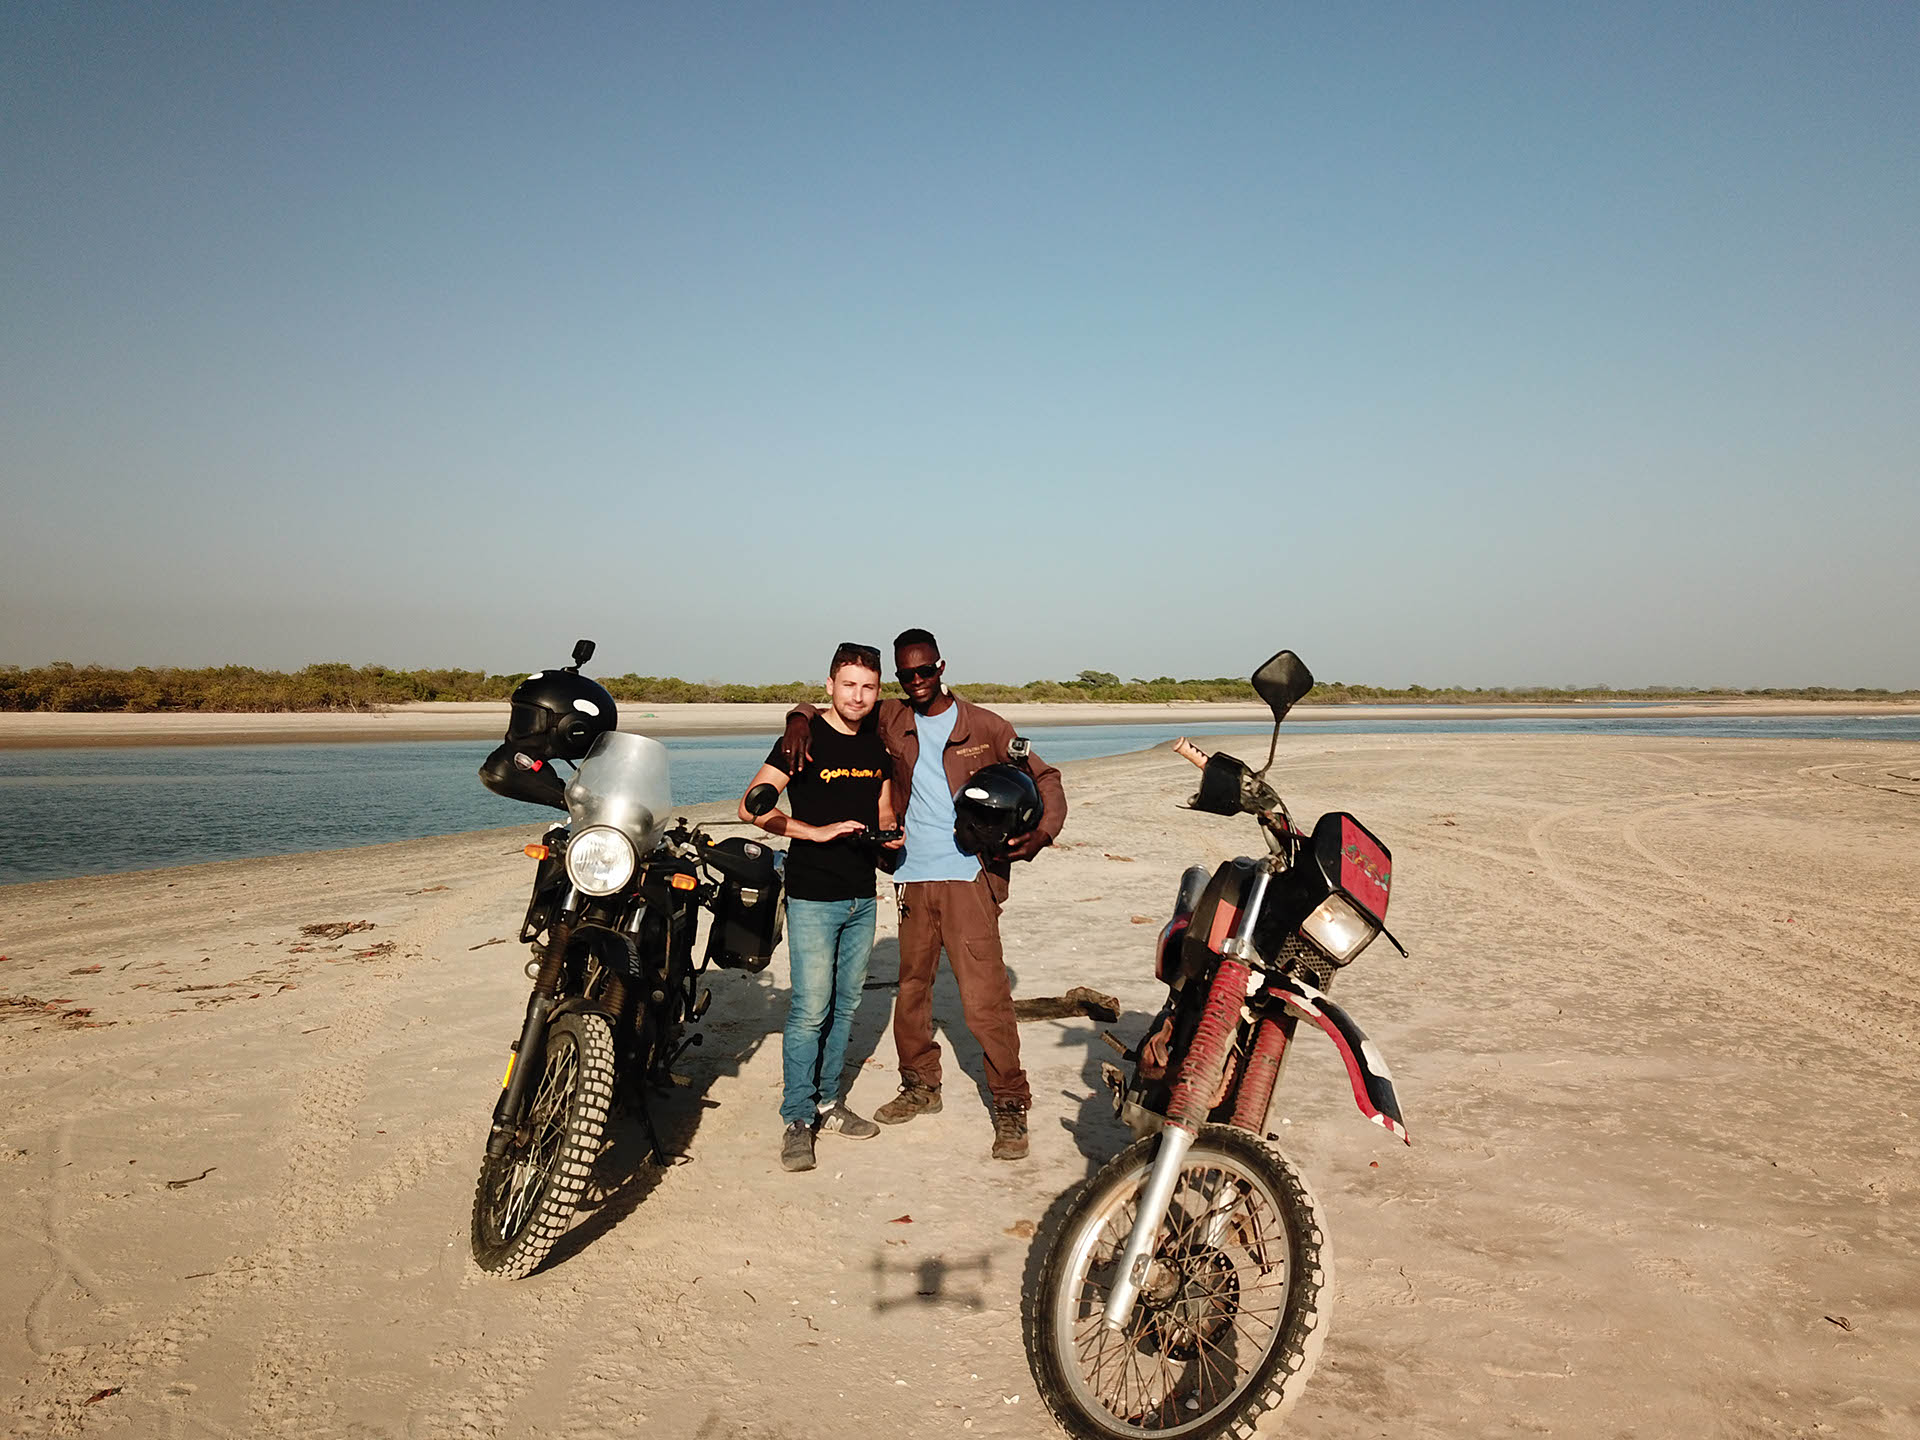 Erwan going south Royal Enfield Himalayan Afrique